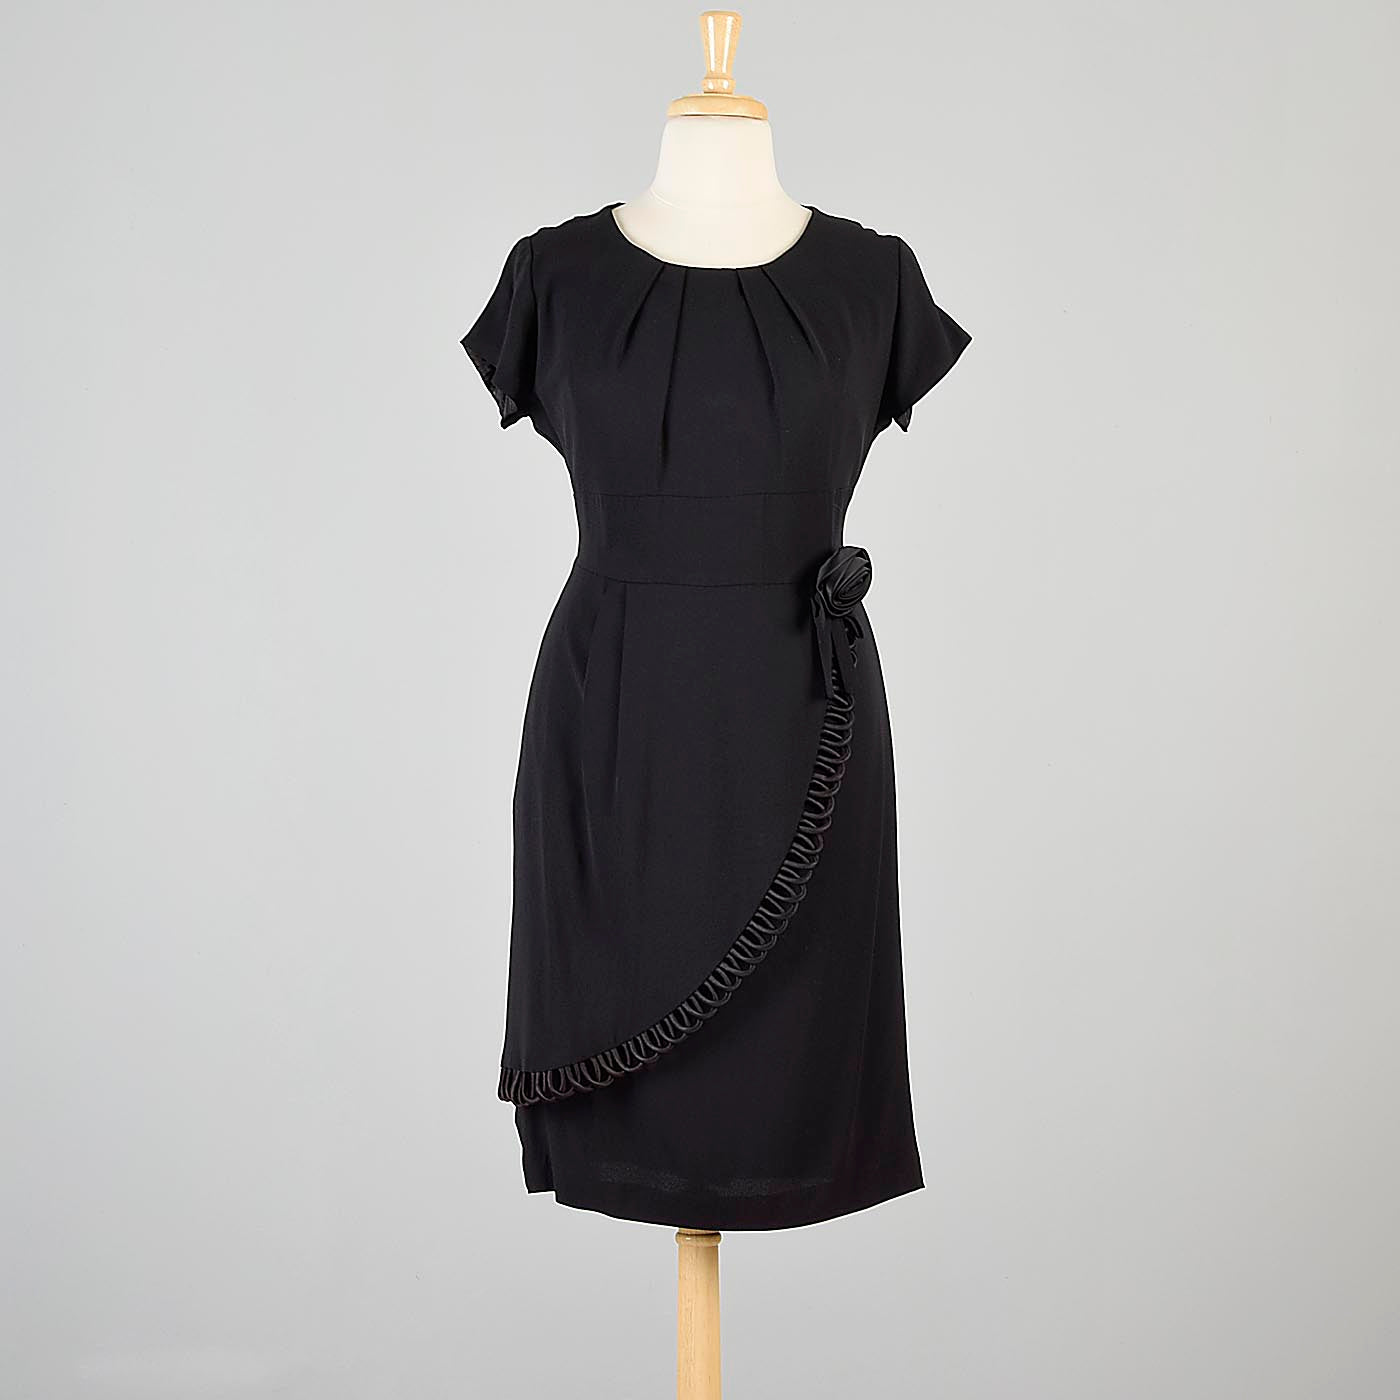 1960s Black Cocktail Dress with Faux Wrap Skirt